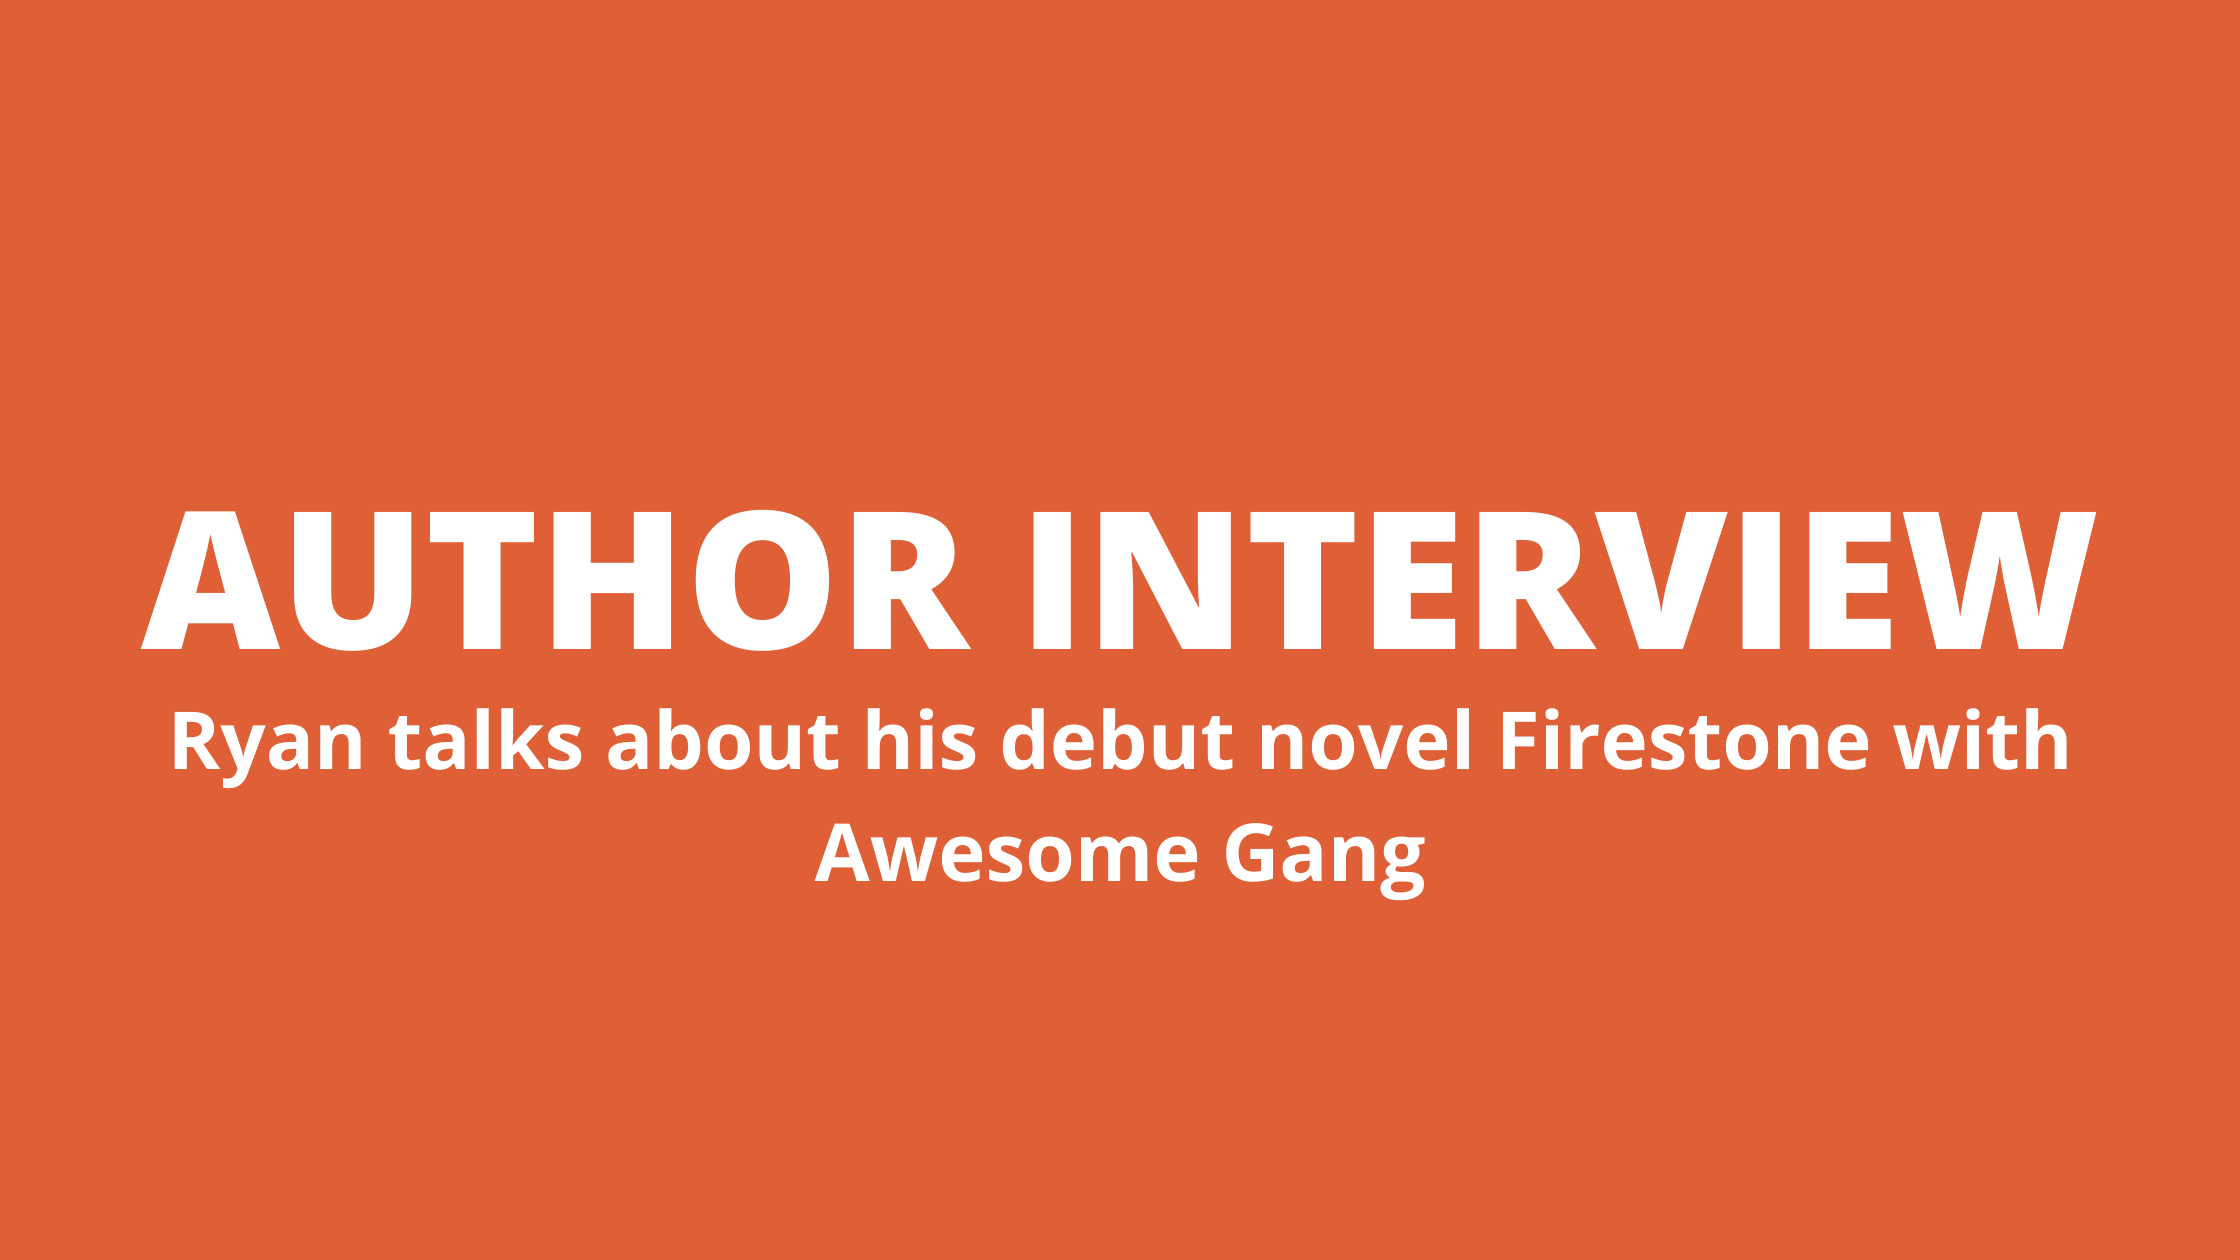 author interview,ryan carriere,awesome gang author interview,awesome gang, Author Interview – Awesome Gang, RYAN CARRIERE